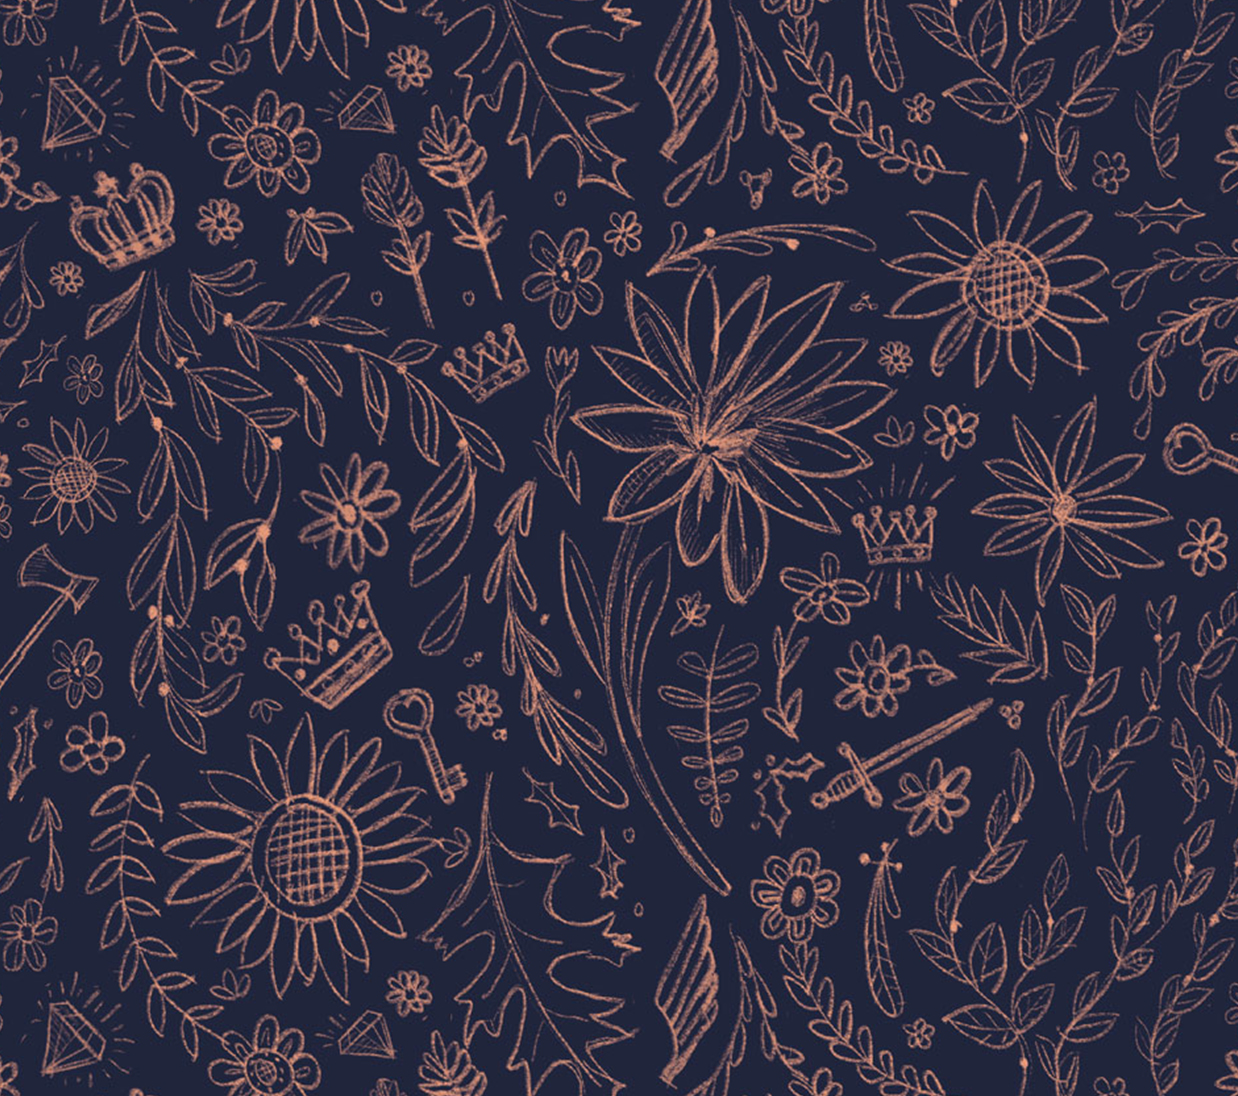 StrongWell illustration pattern of flowers, crowns and filigree elements